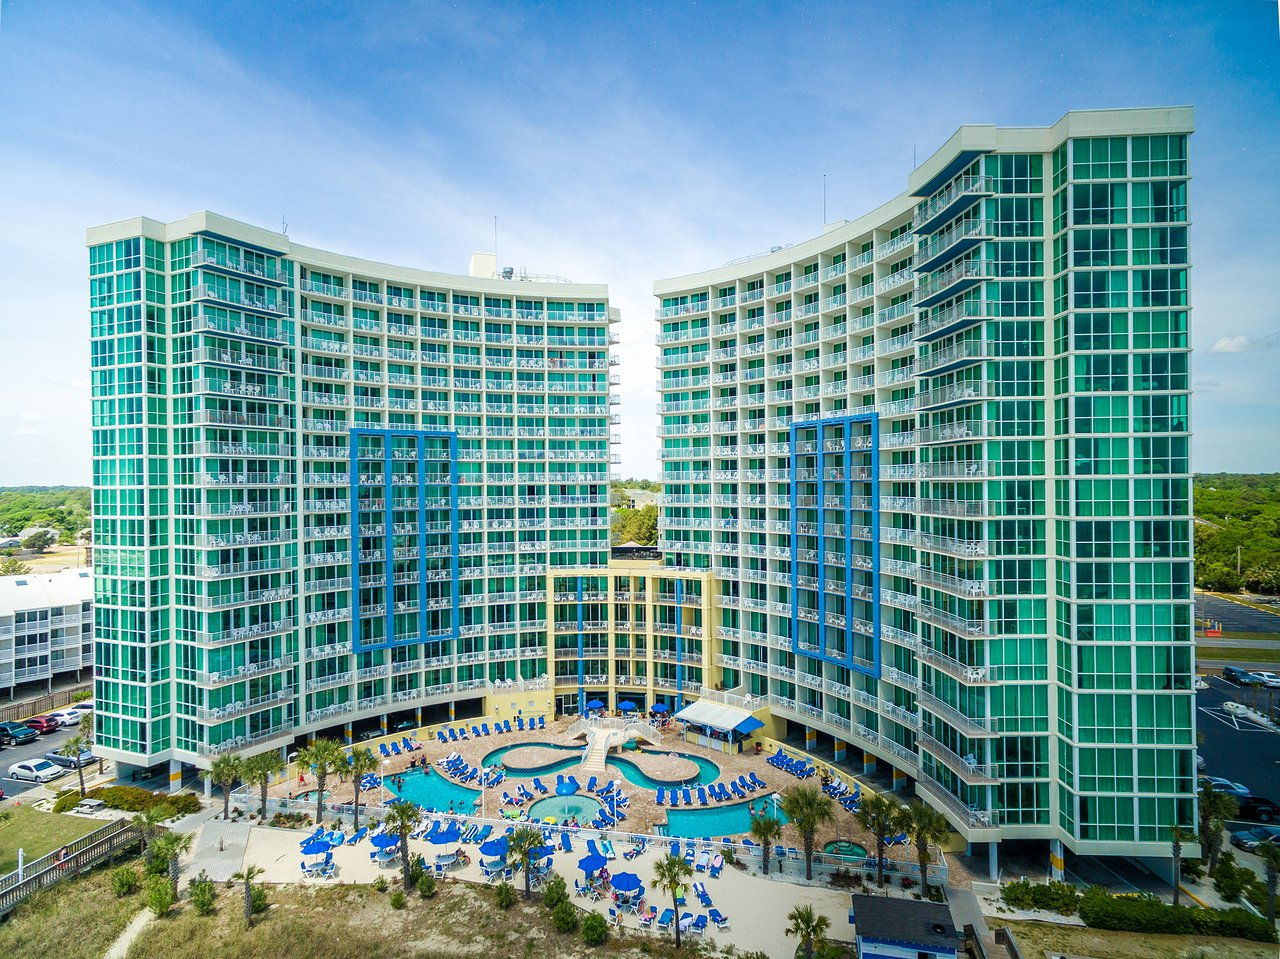 The 10 Best Hotels In North Myrtle Beach Sc For 2019 From